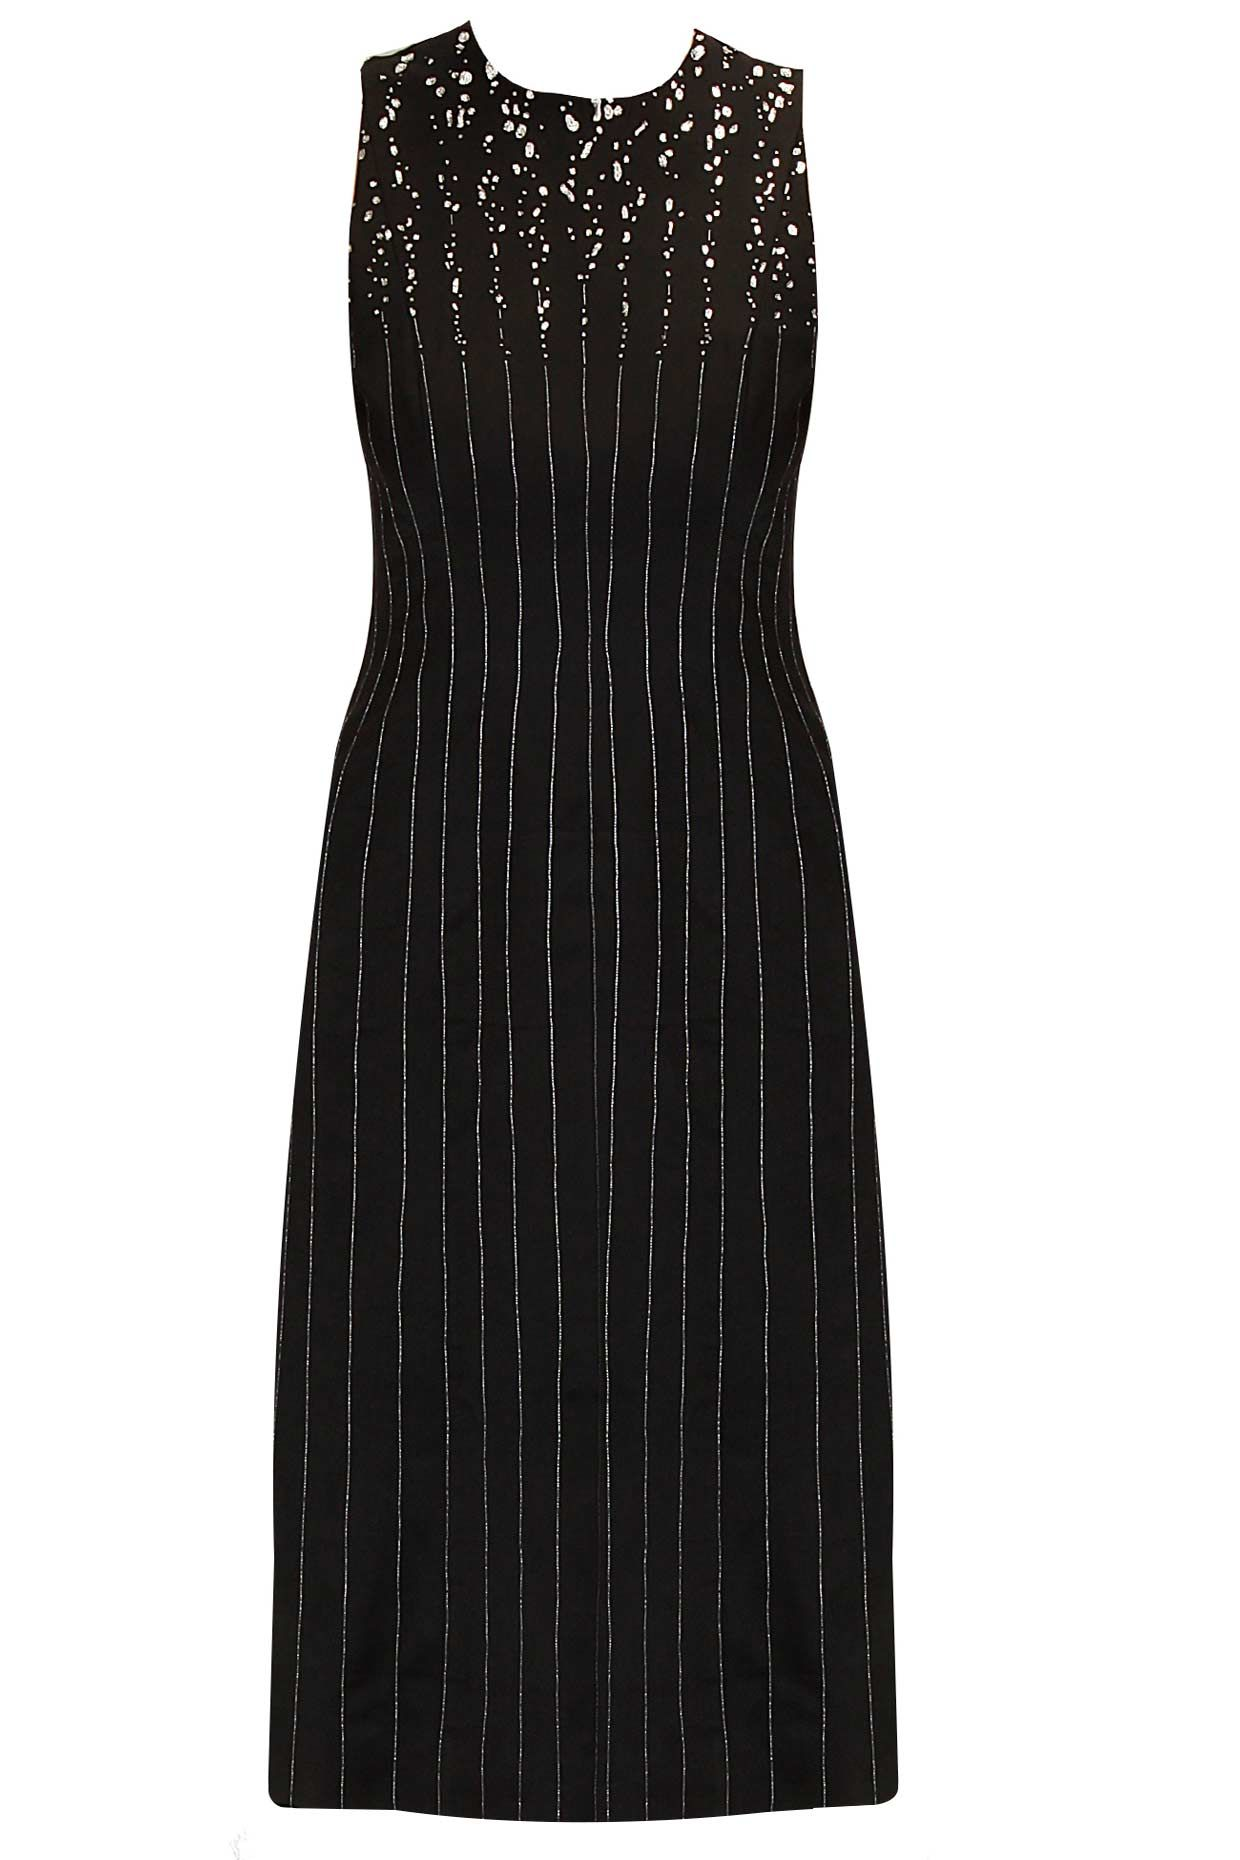 Black pinstriped dress by huemn shop now